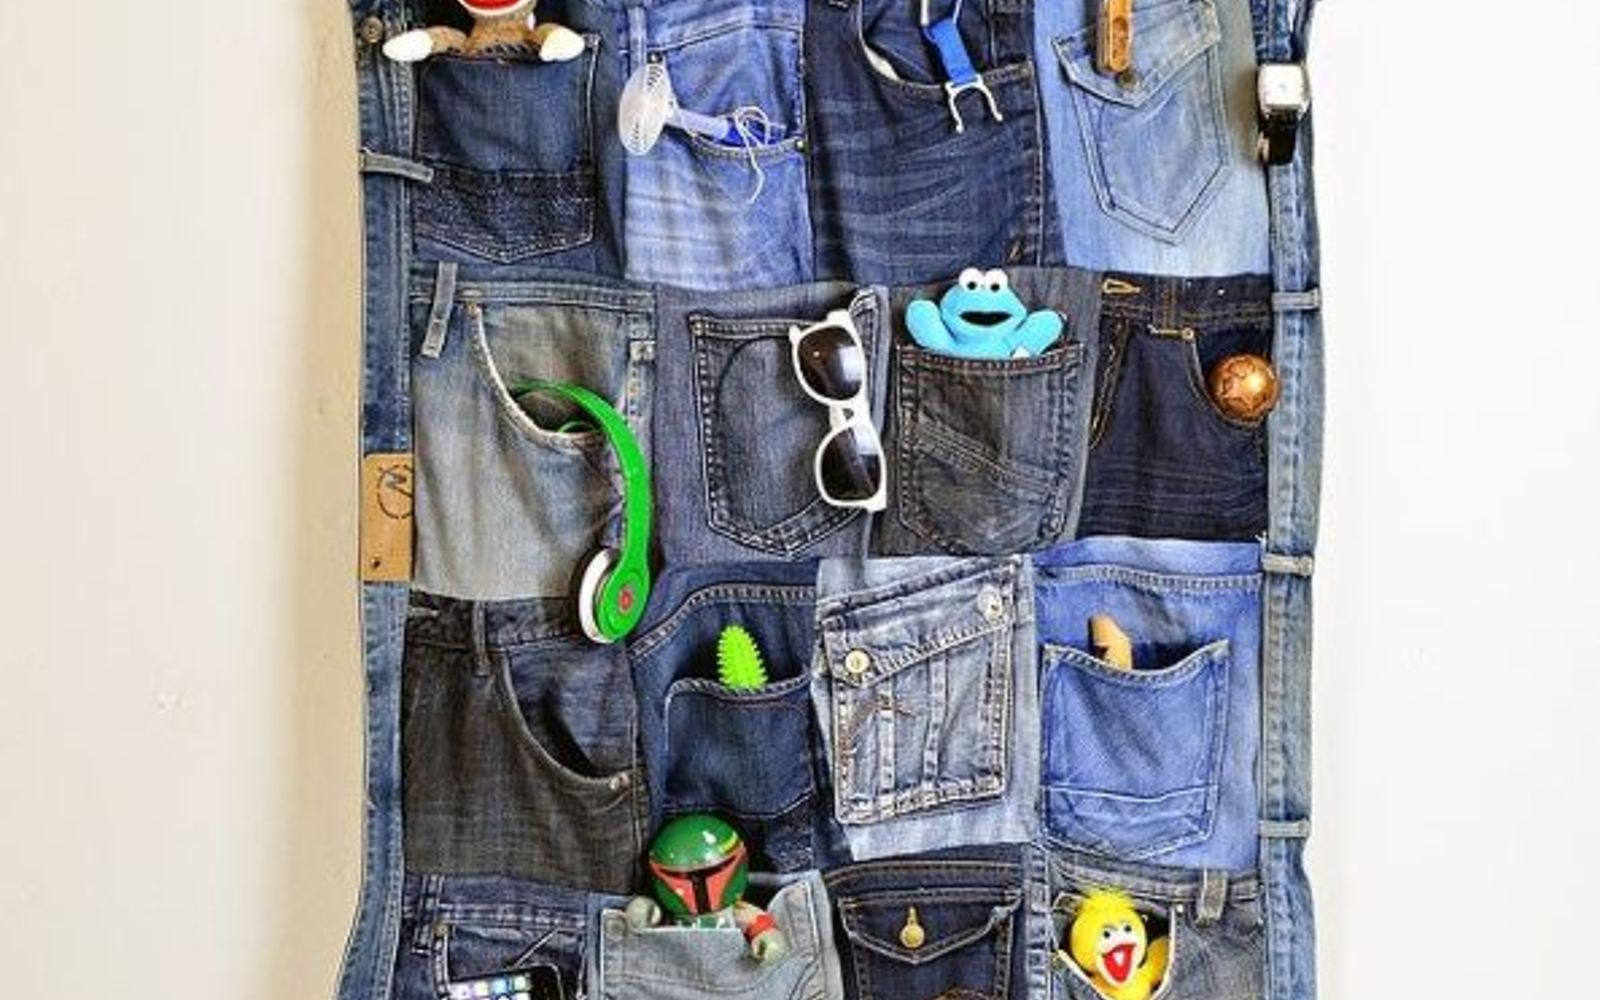 s the best organizing ideas of 2015 that you should do this year too, organizing, Turn Old Jeans into a Wall Organizer